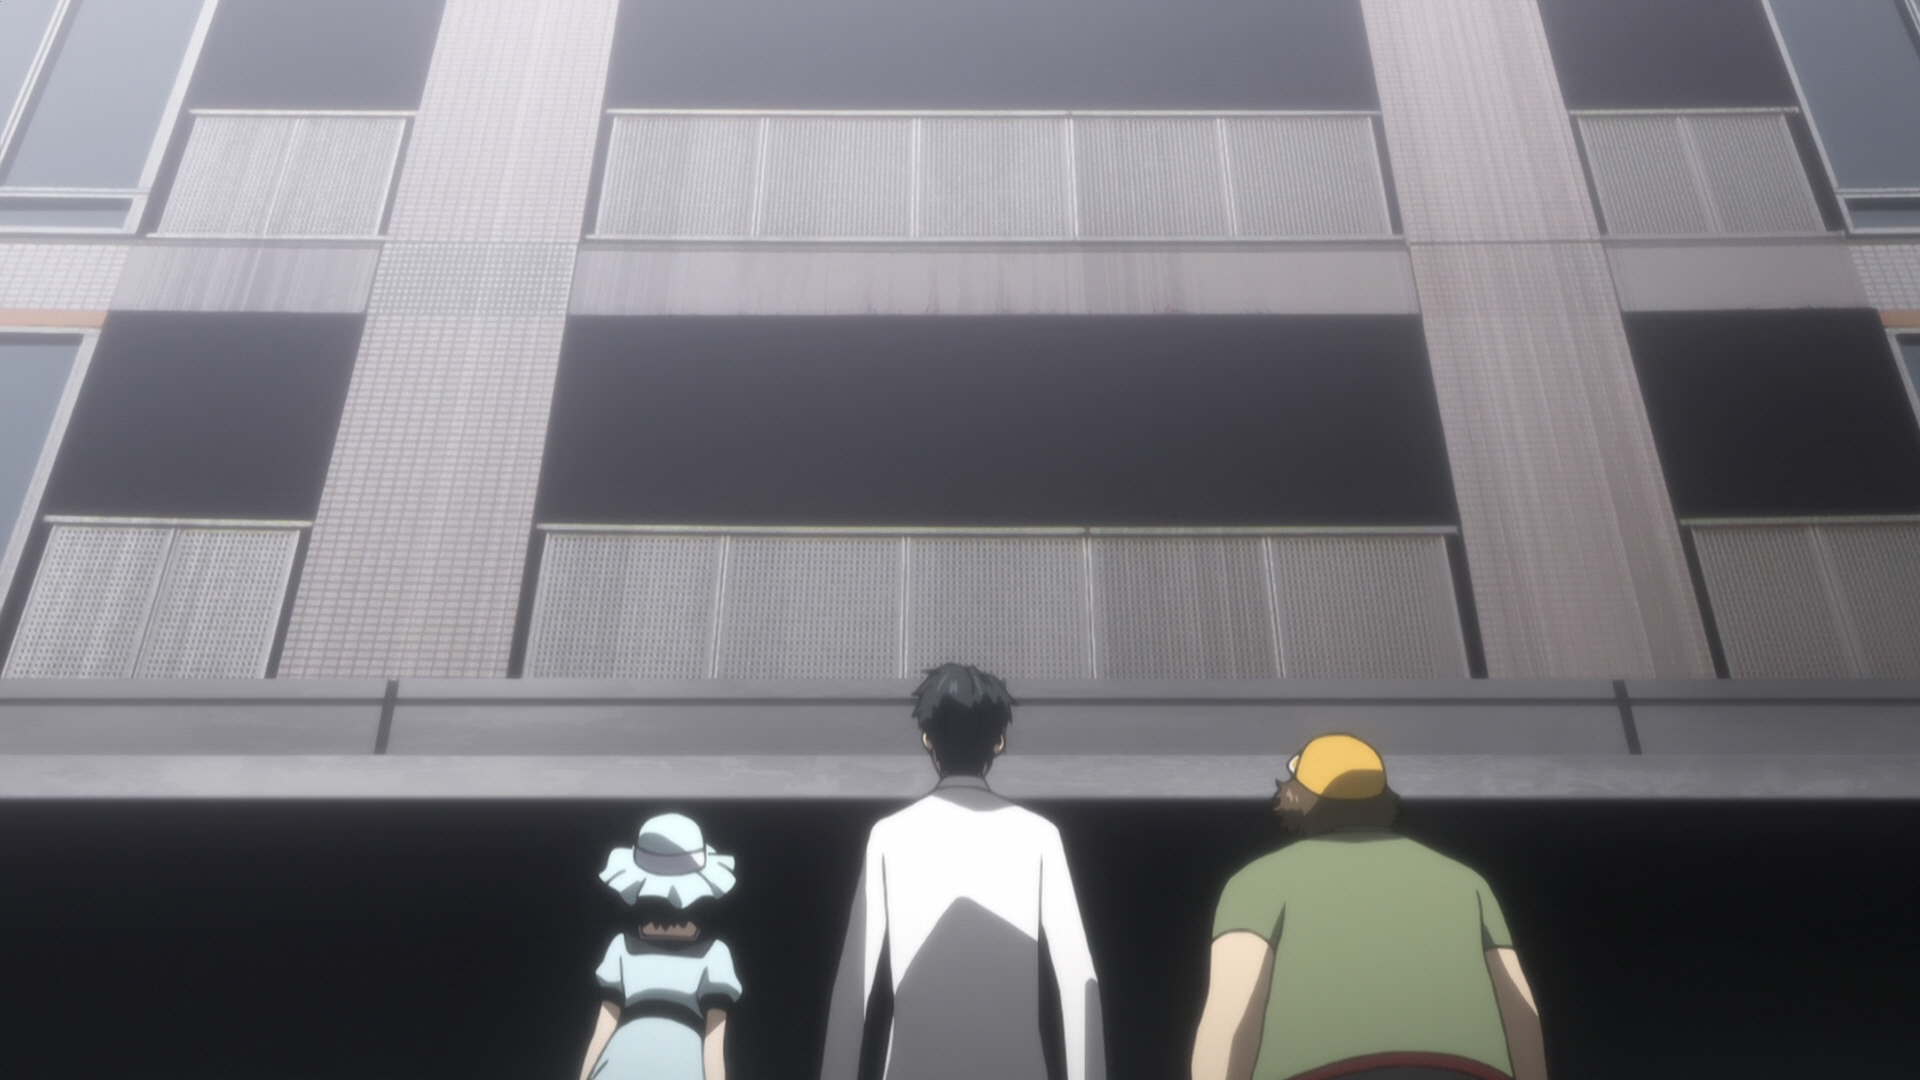 Steins Gate Episode 9 Chaos Theory Homeostasis II 15